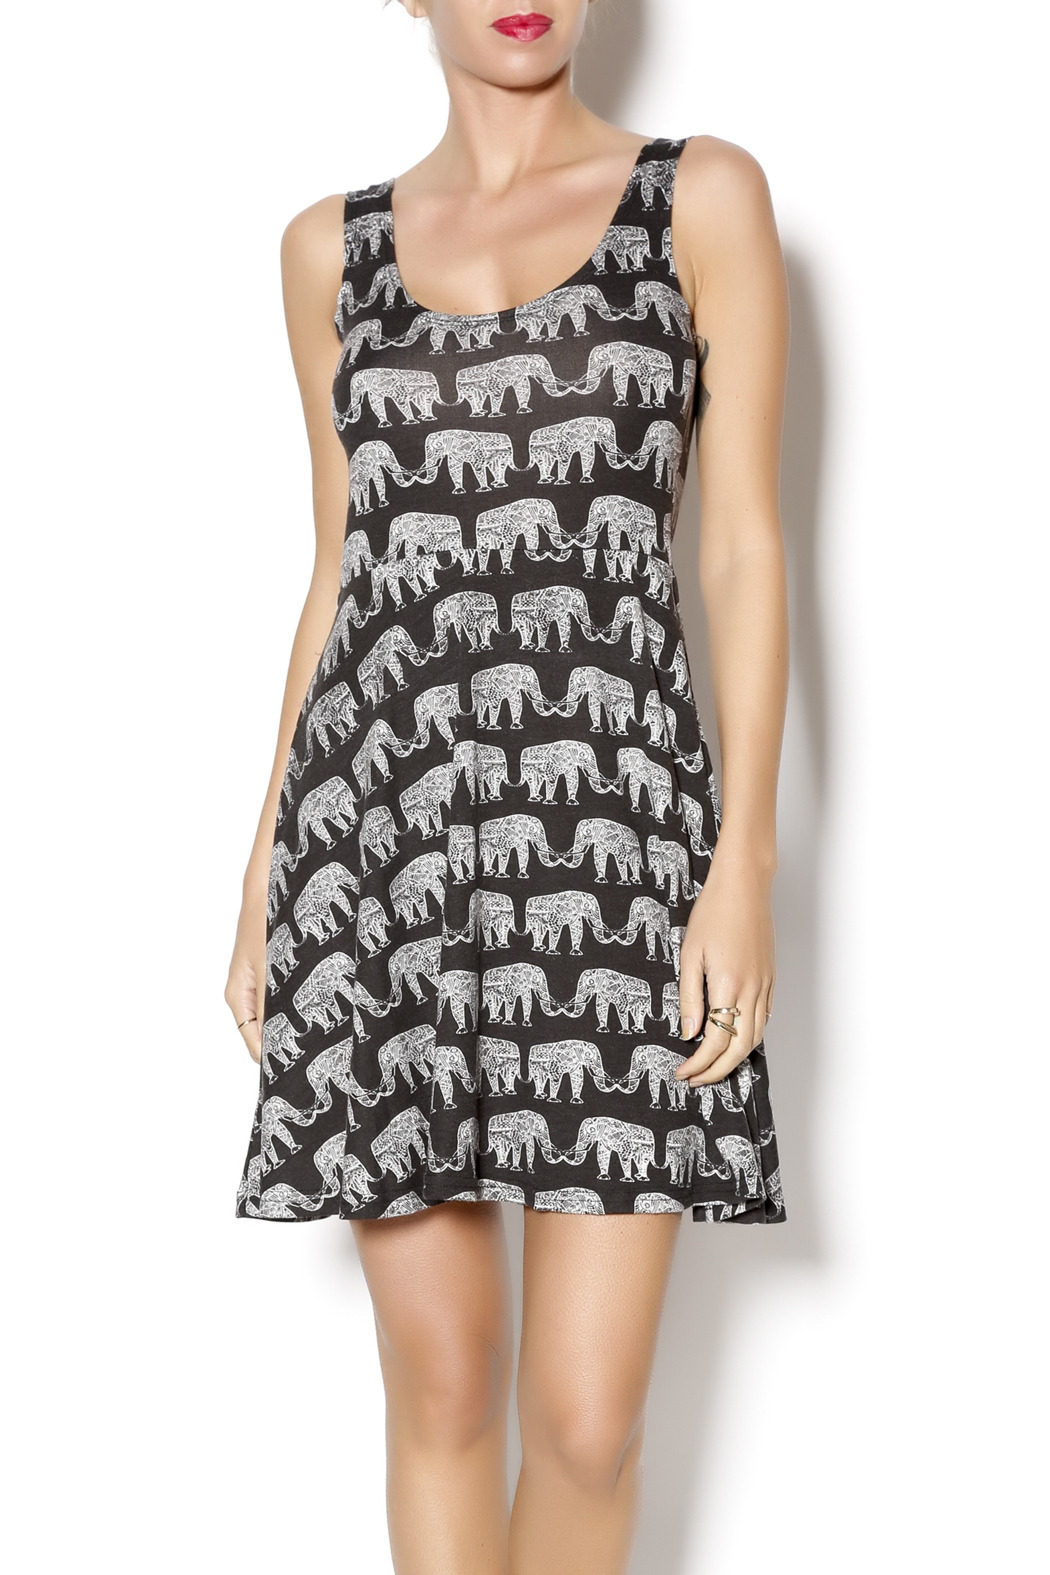 Angie Elephant Print Dress From Delaware By Grassroots